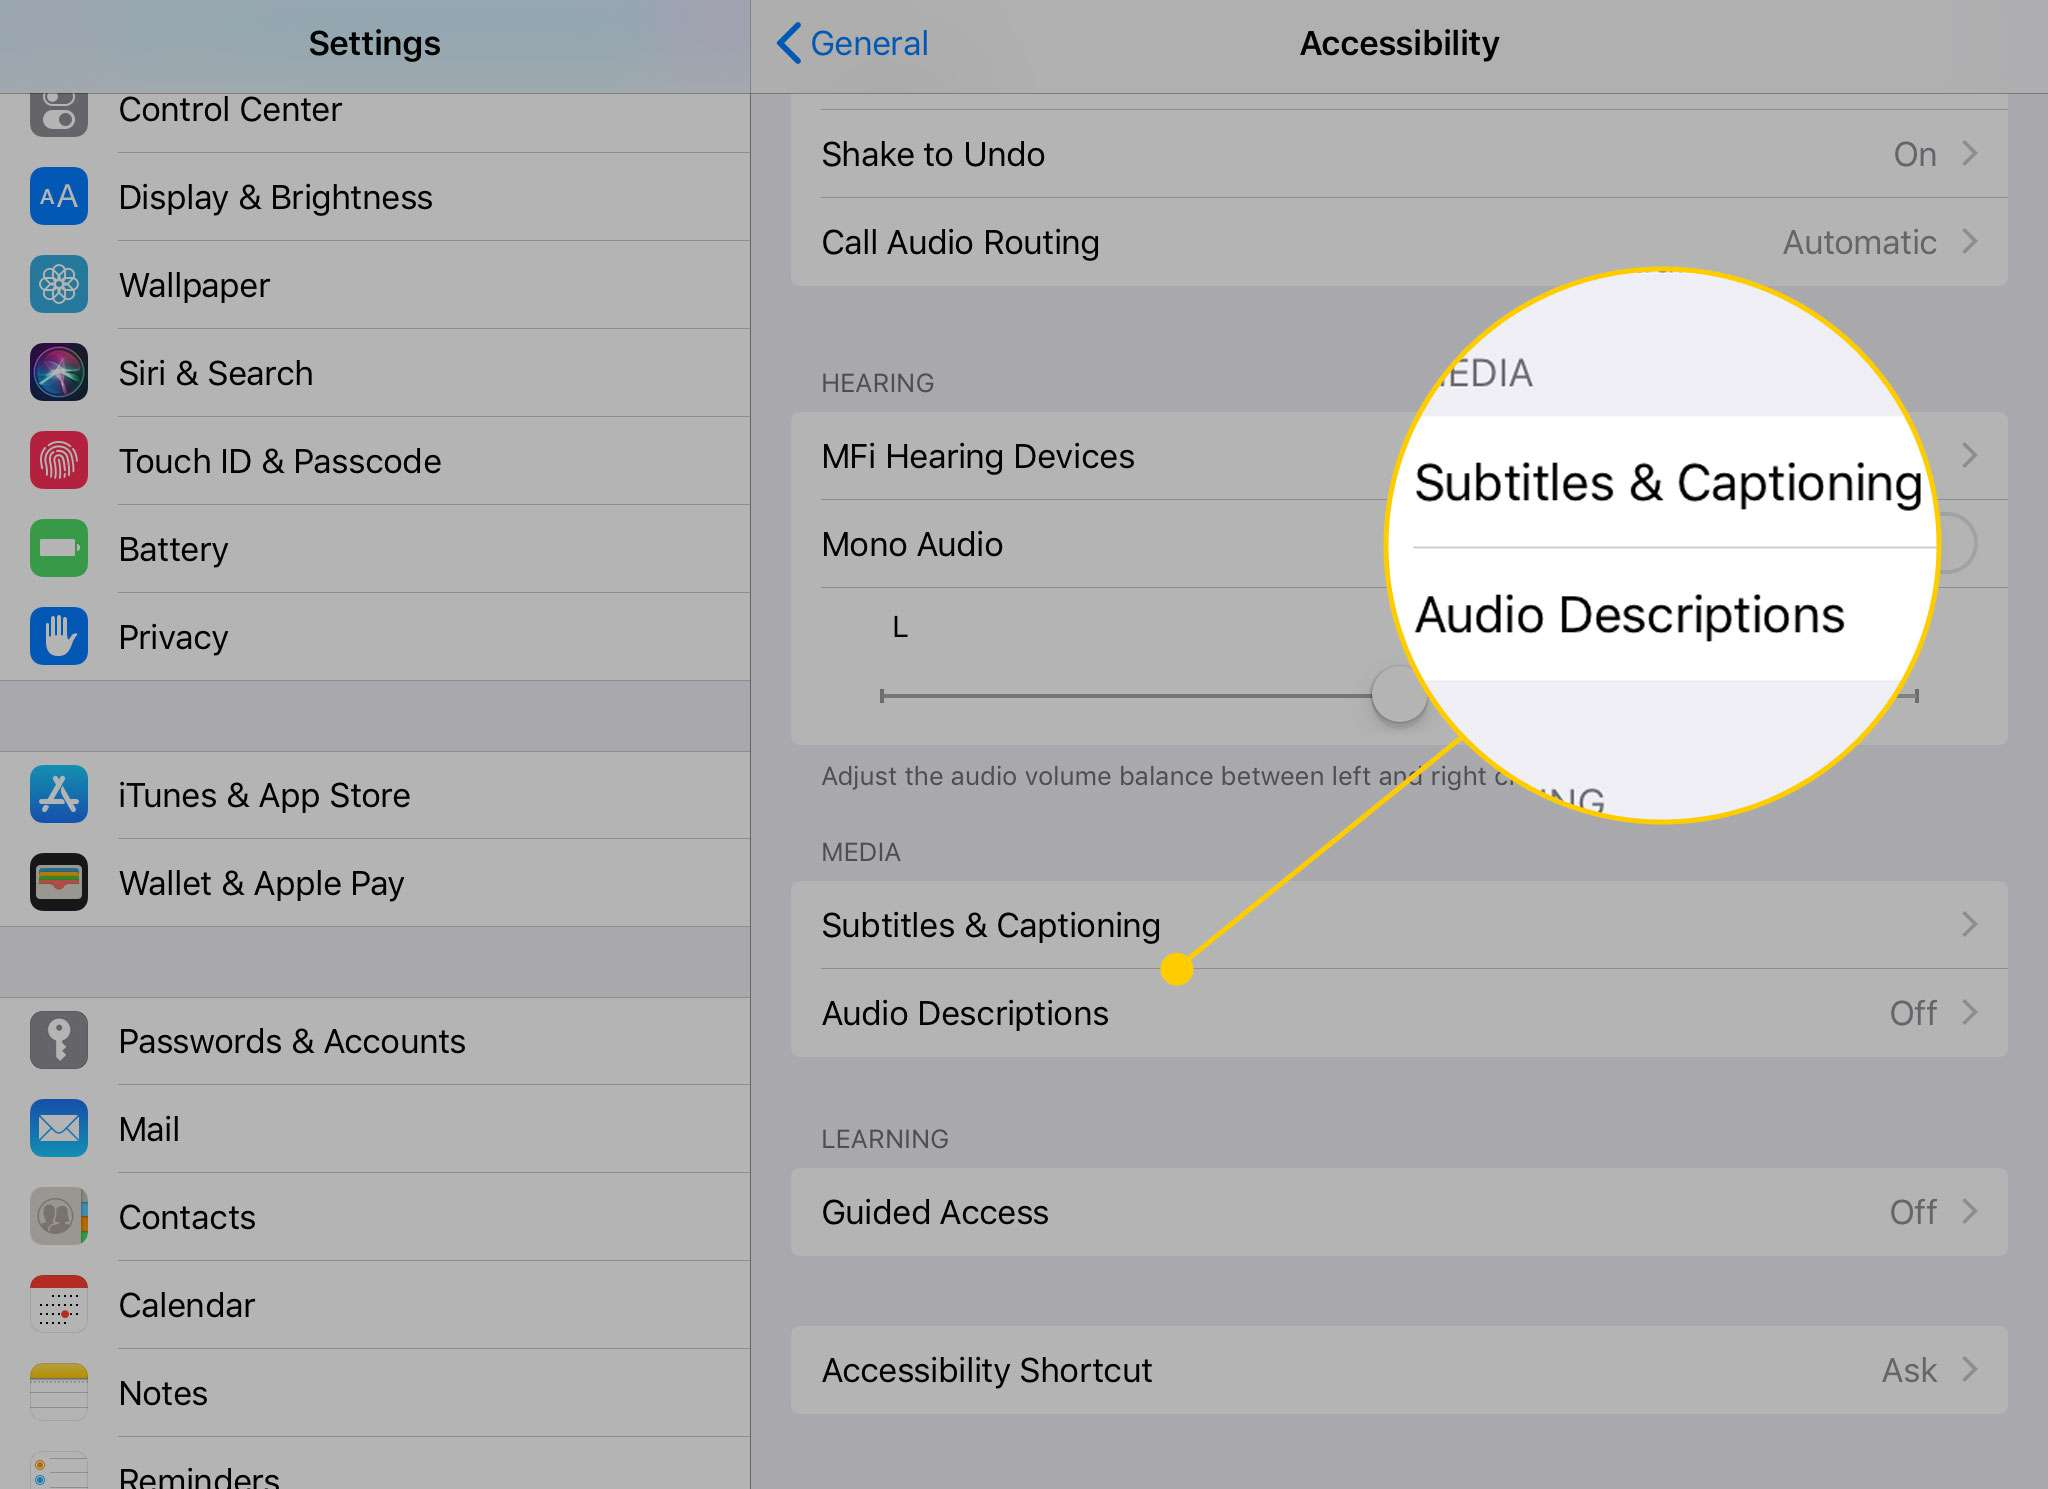 Accessibility options on the iPad with the Subtitles & Captioning and Audio Descriptions headings highlighted